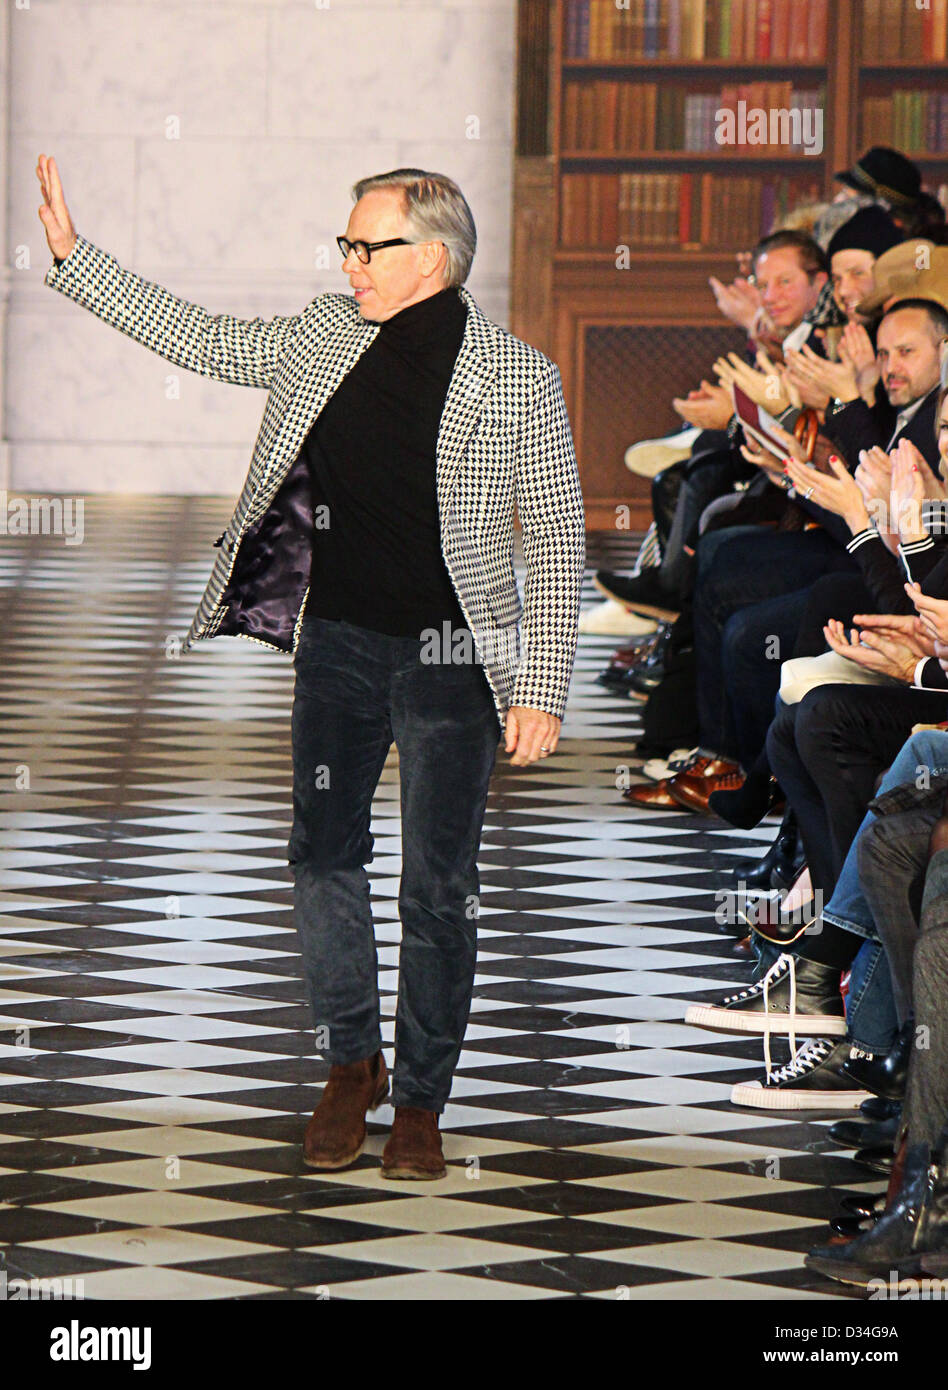 0e9ef7709 New York, USA. 8th February 2013. Designer Tommy Hilfiger waves after his  show